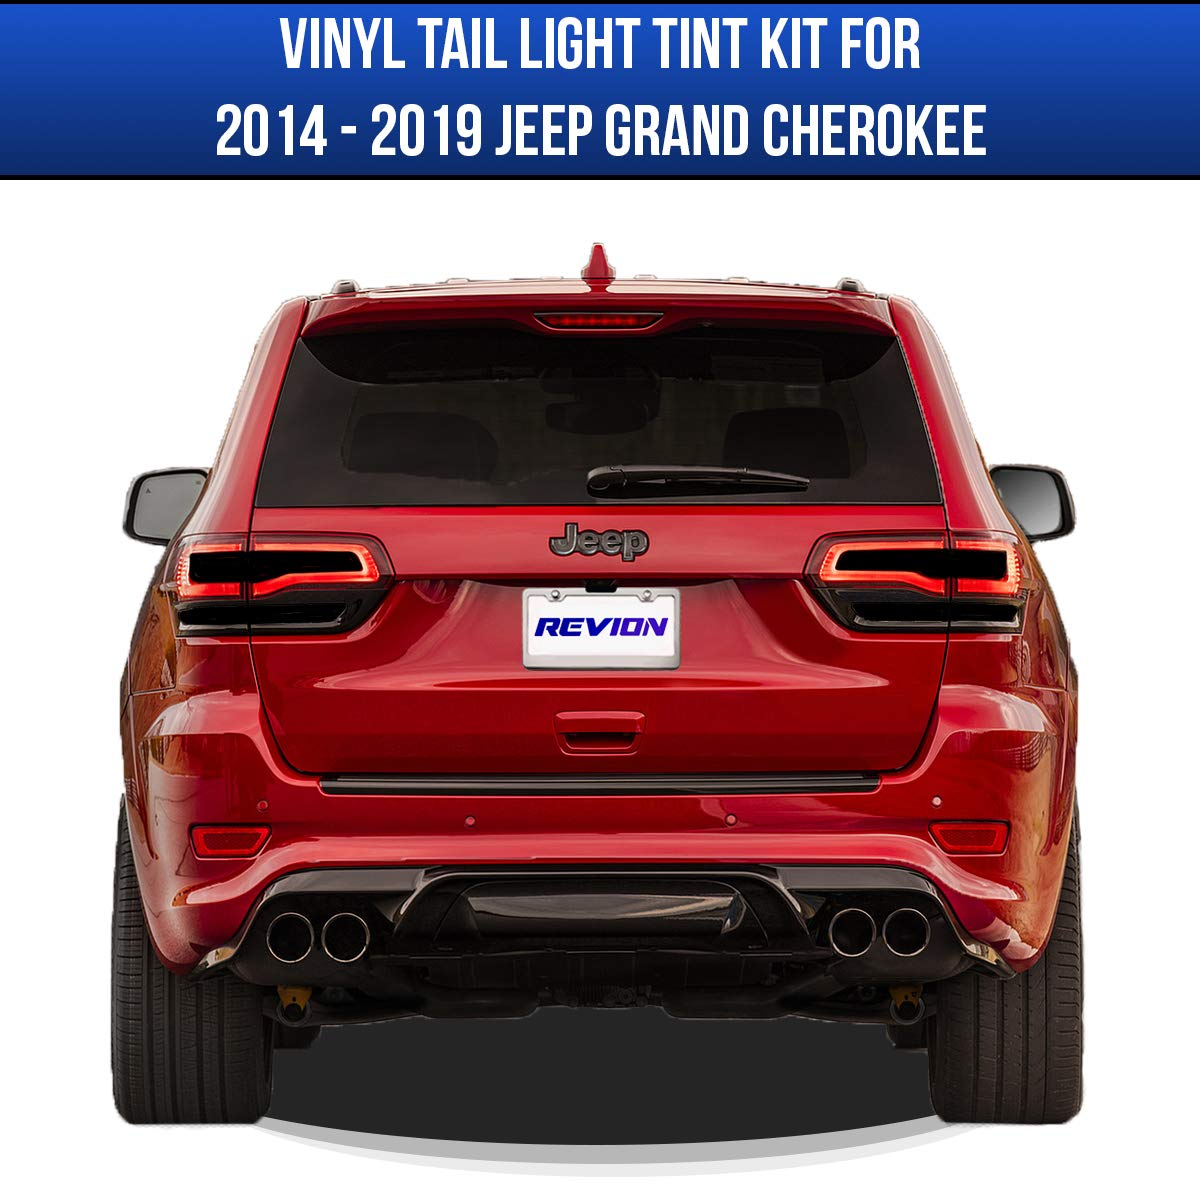 Accessories REVION Autoworks 2014-2019 Jeep Grand Cherokee Tail Light Tint Kit Taillight Overlay Covers Compatible with 14-19 Jeep Grand Cherokee